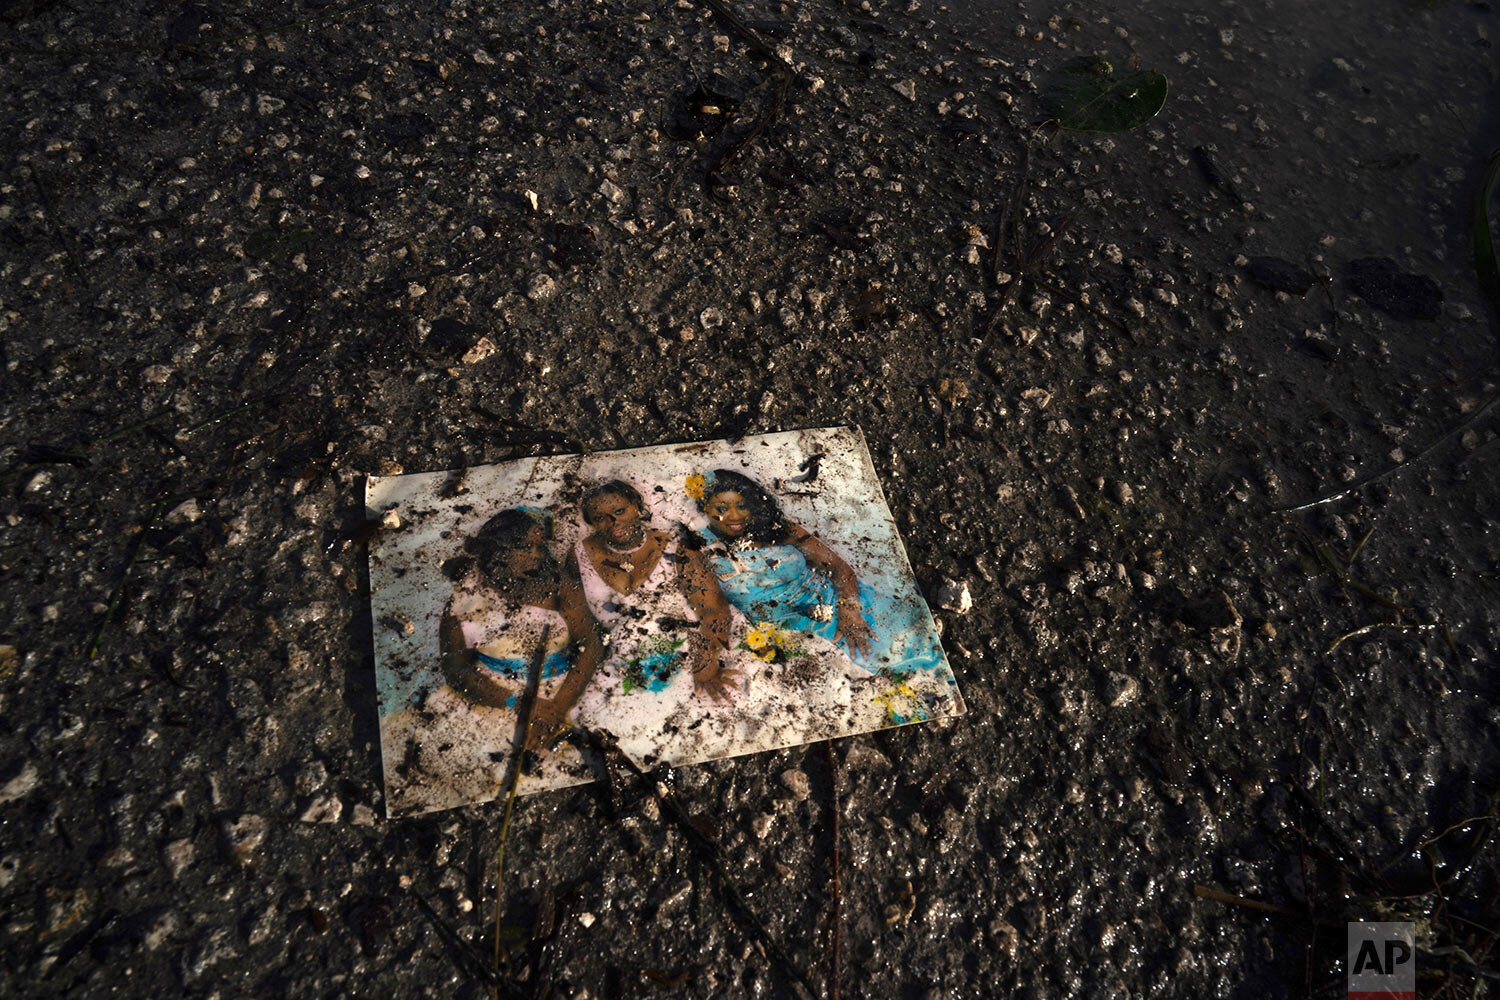 A family photo lies on a muddied road in the aftermath of Hurricane Dorian in Pine Bay, near Freeport, Bahamas, Wednesday, Sept. 4, 2019.  (AP Photo/Ramon Espinosa)